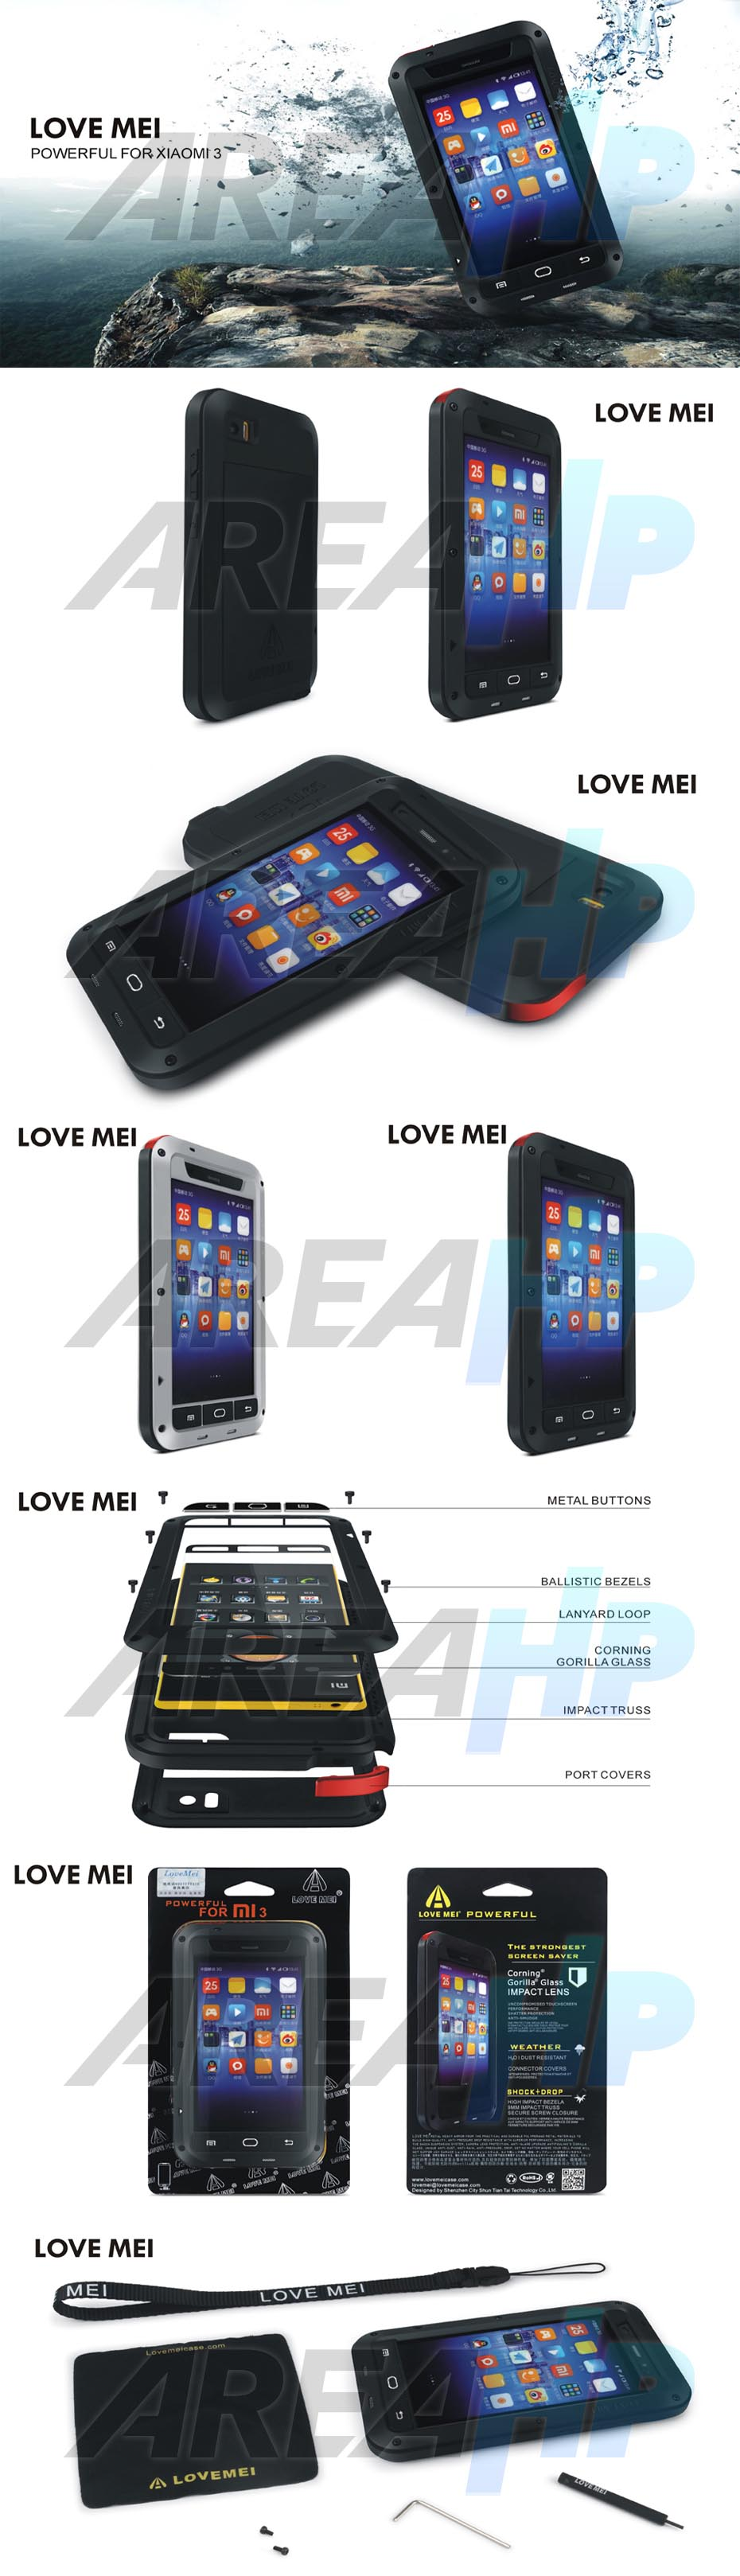 Love Mei Powerful Case for Xiao Mi 3 Overview